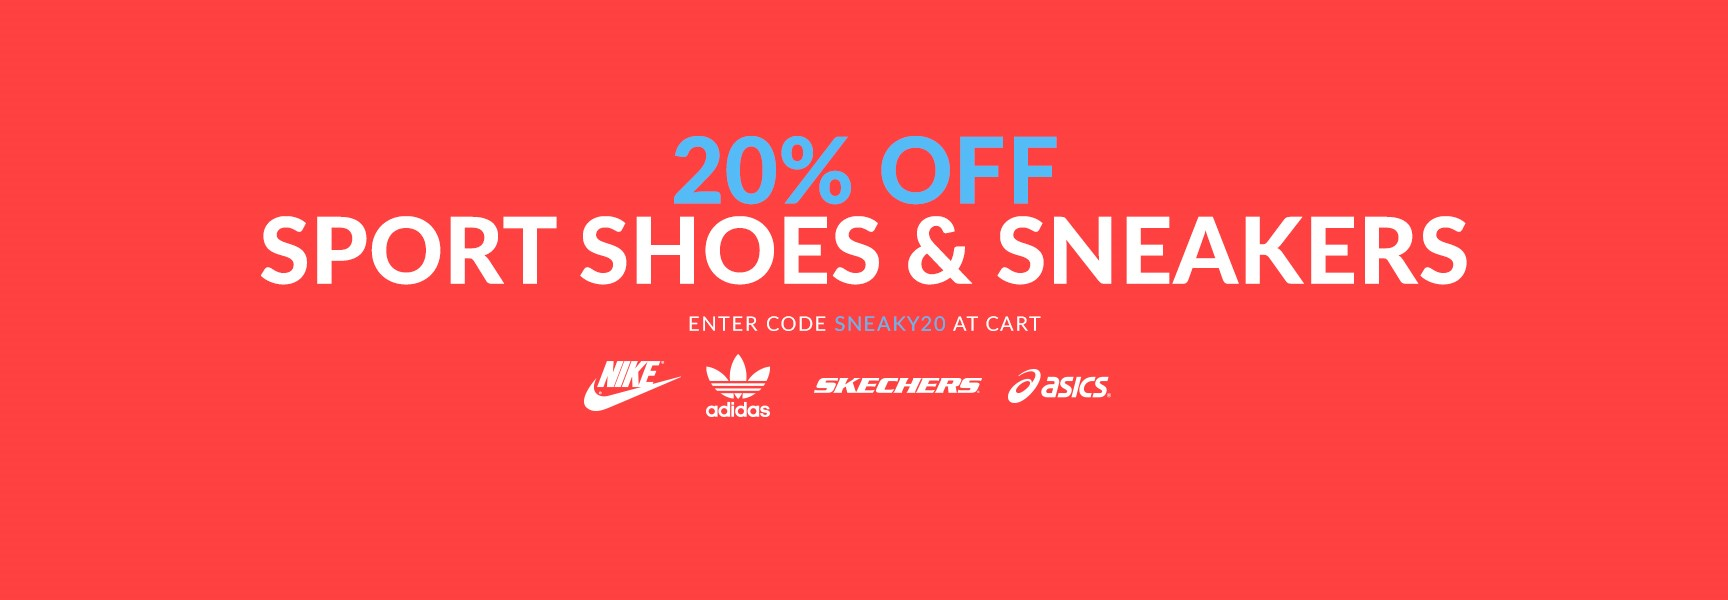 20off_sport_sneakers_desktop